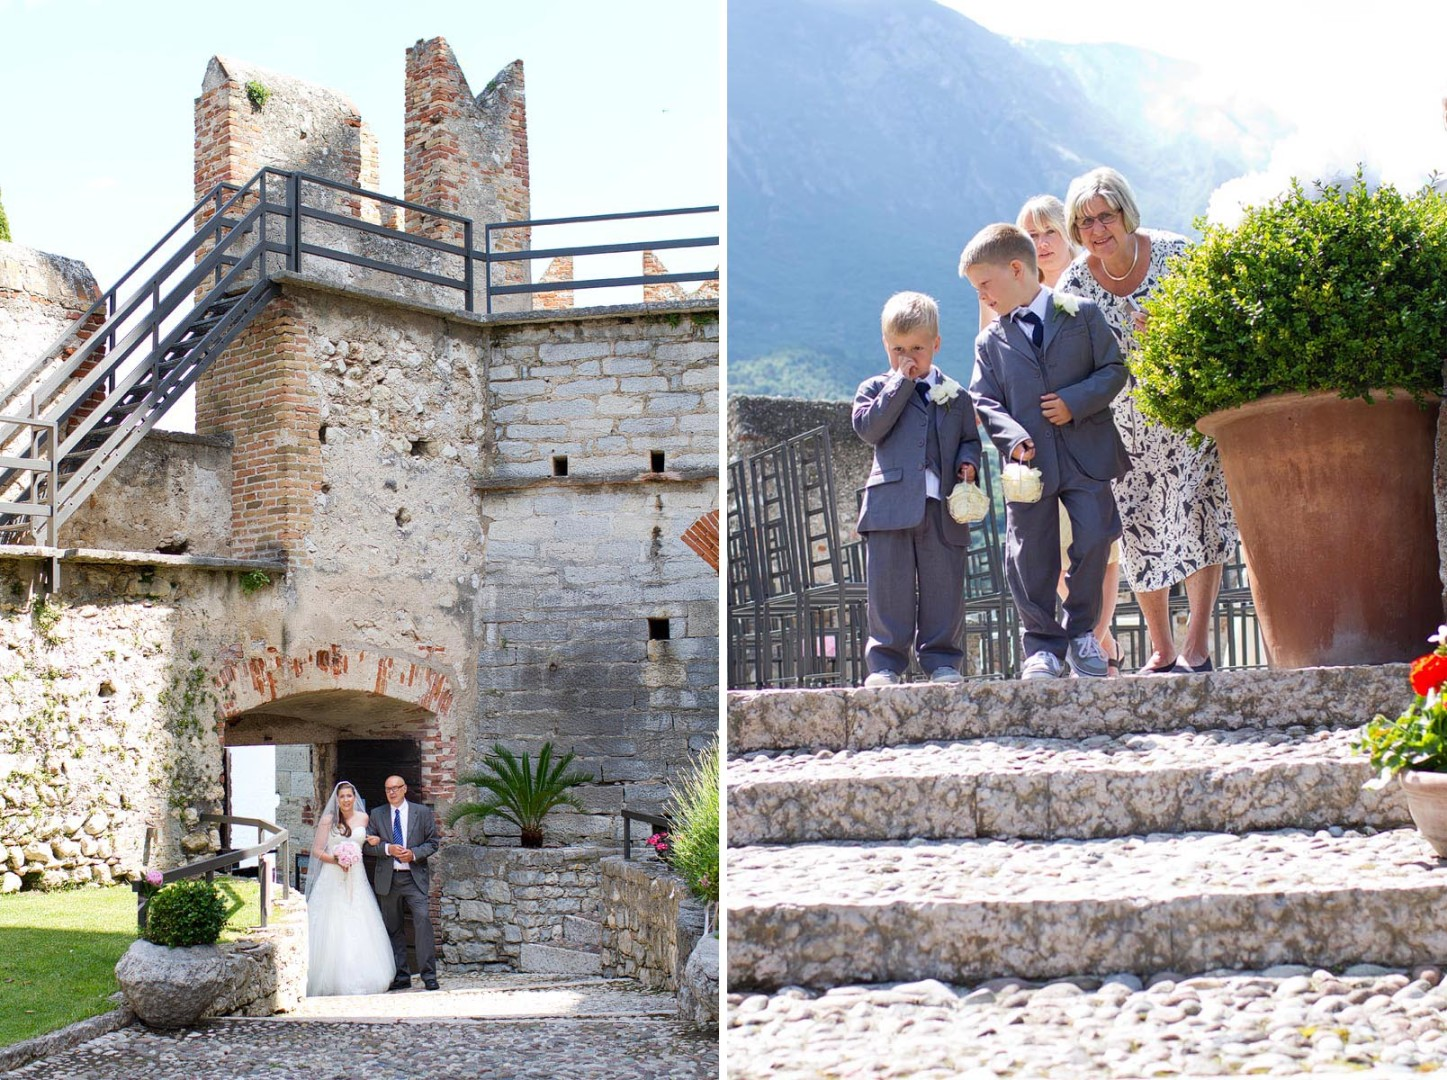 DestinationWedding_Italy_DesireeMostad_NorskBryllupItalia_013